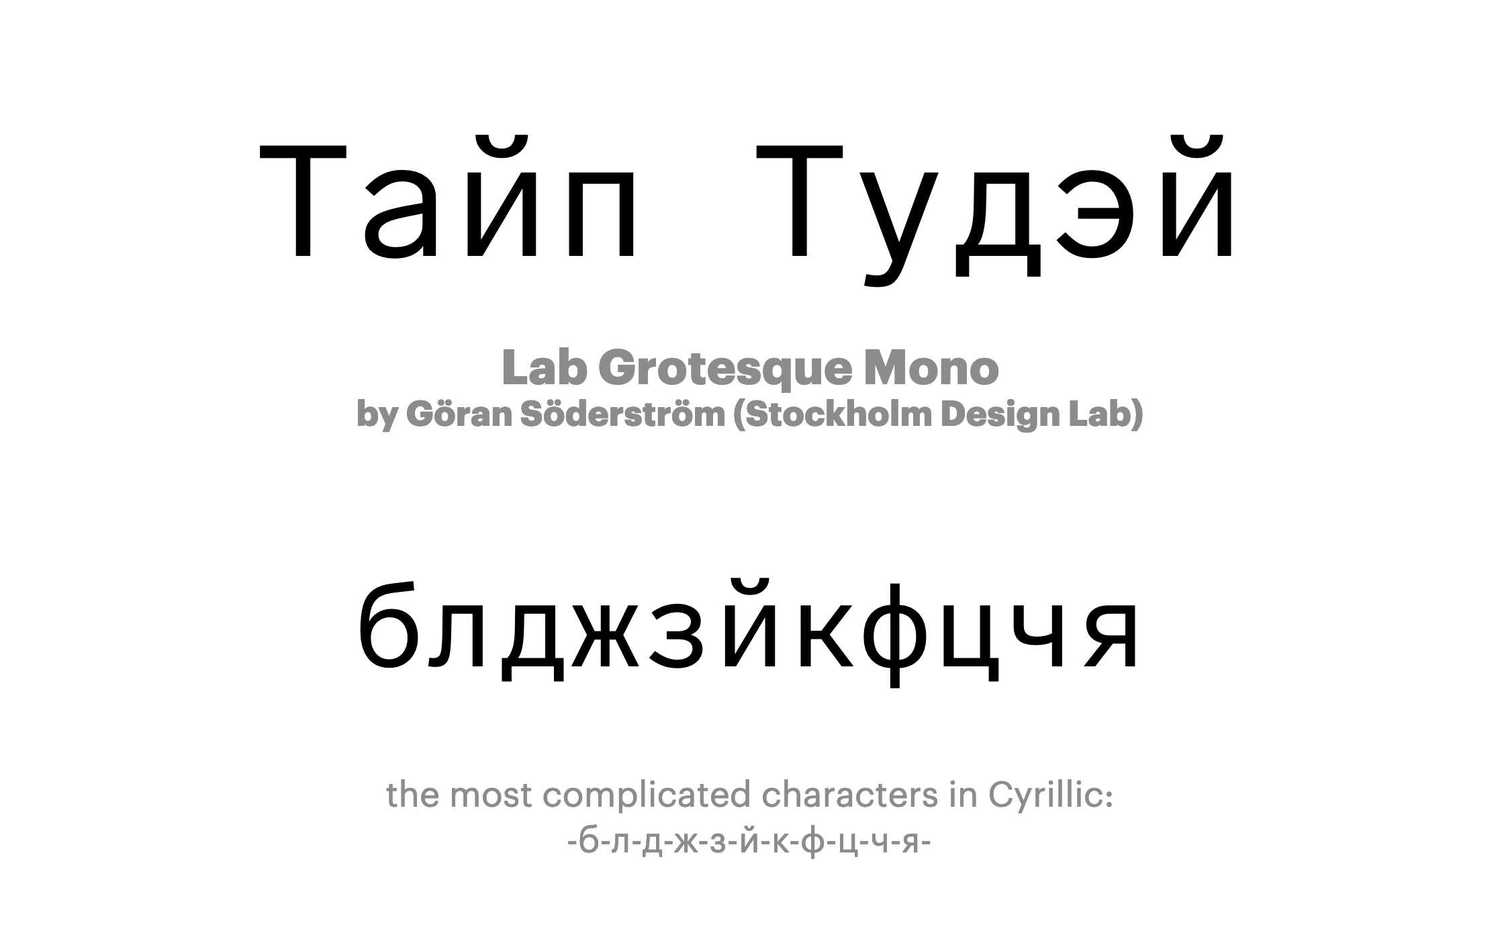 Lab-Grotesque-Mono-by-Goran-Soderstrom-(Stockholm-Design-Lab)